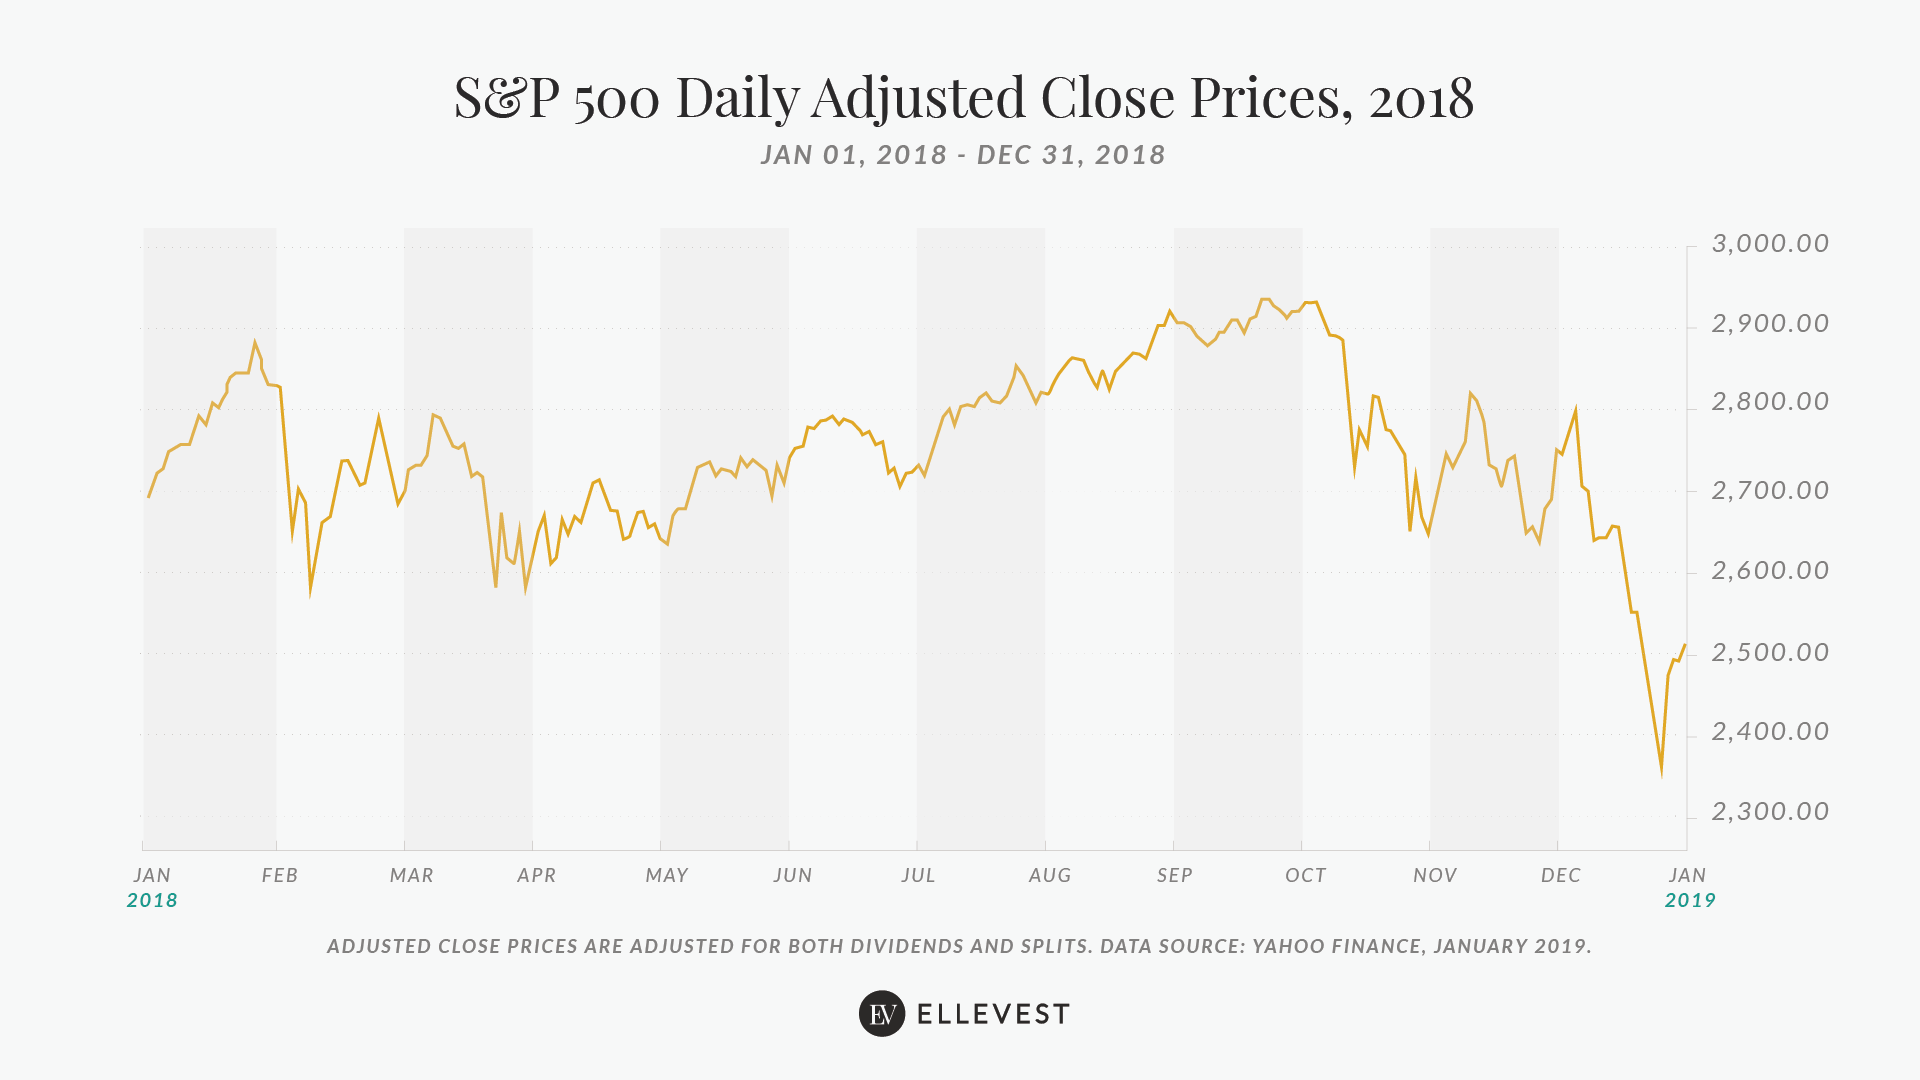 S&P500 Daily Adjusted Close Prices, 2018